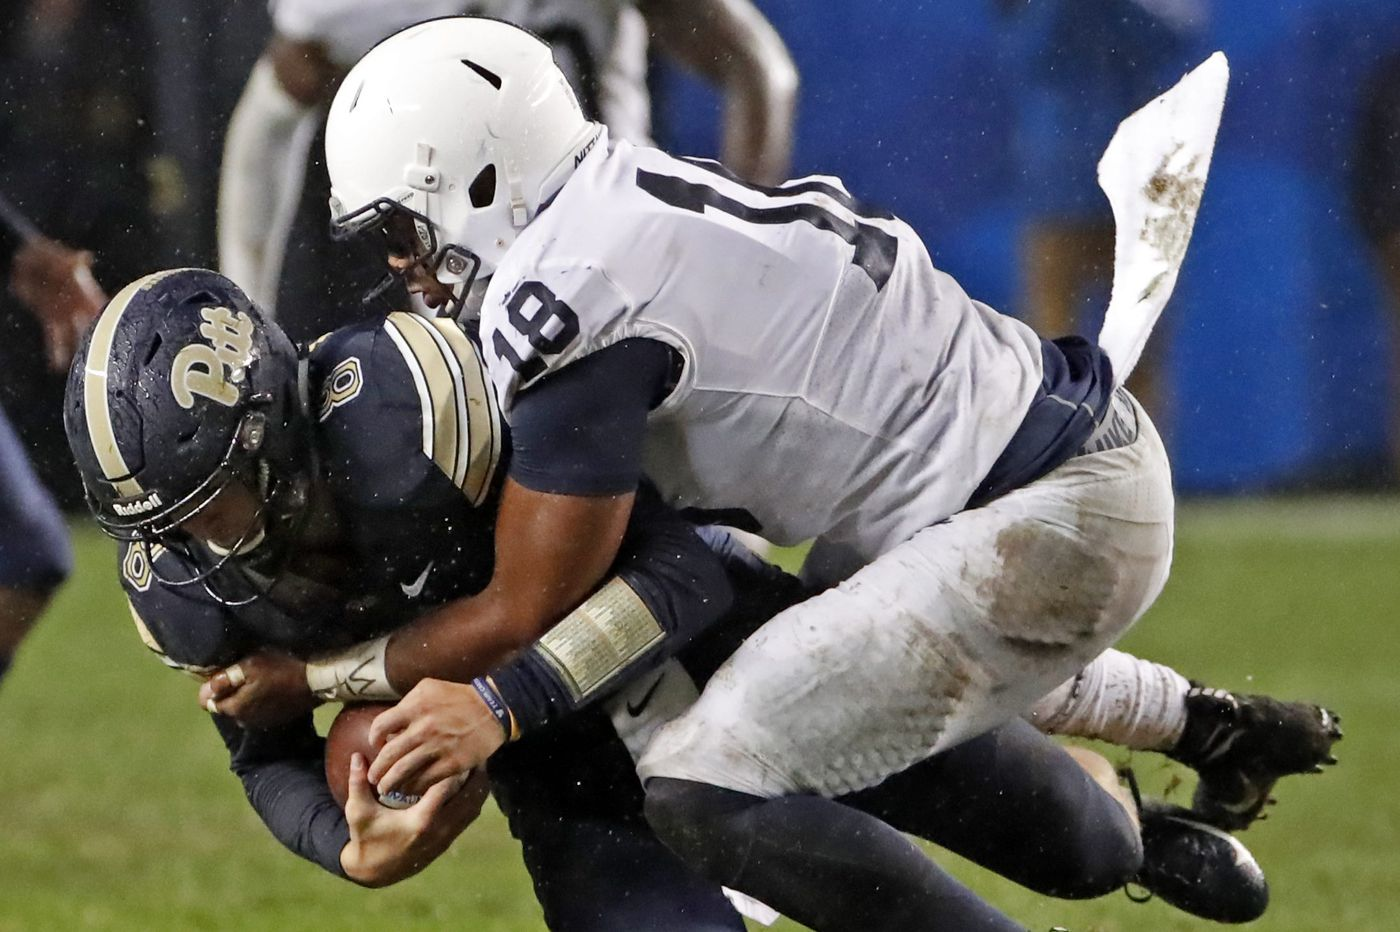 Prediction: Penn State should breeze to victory over Kent State